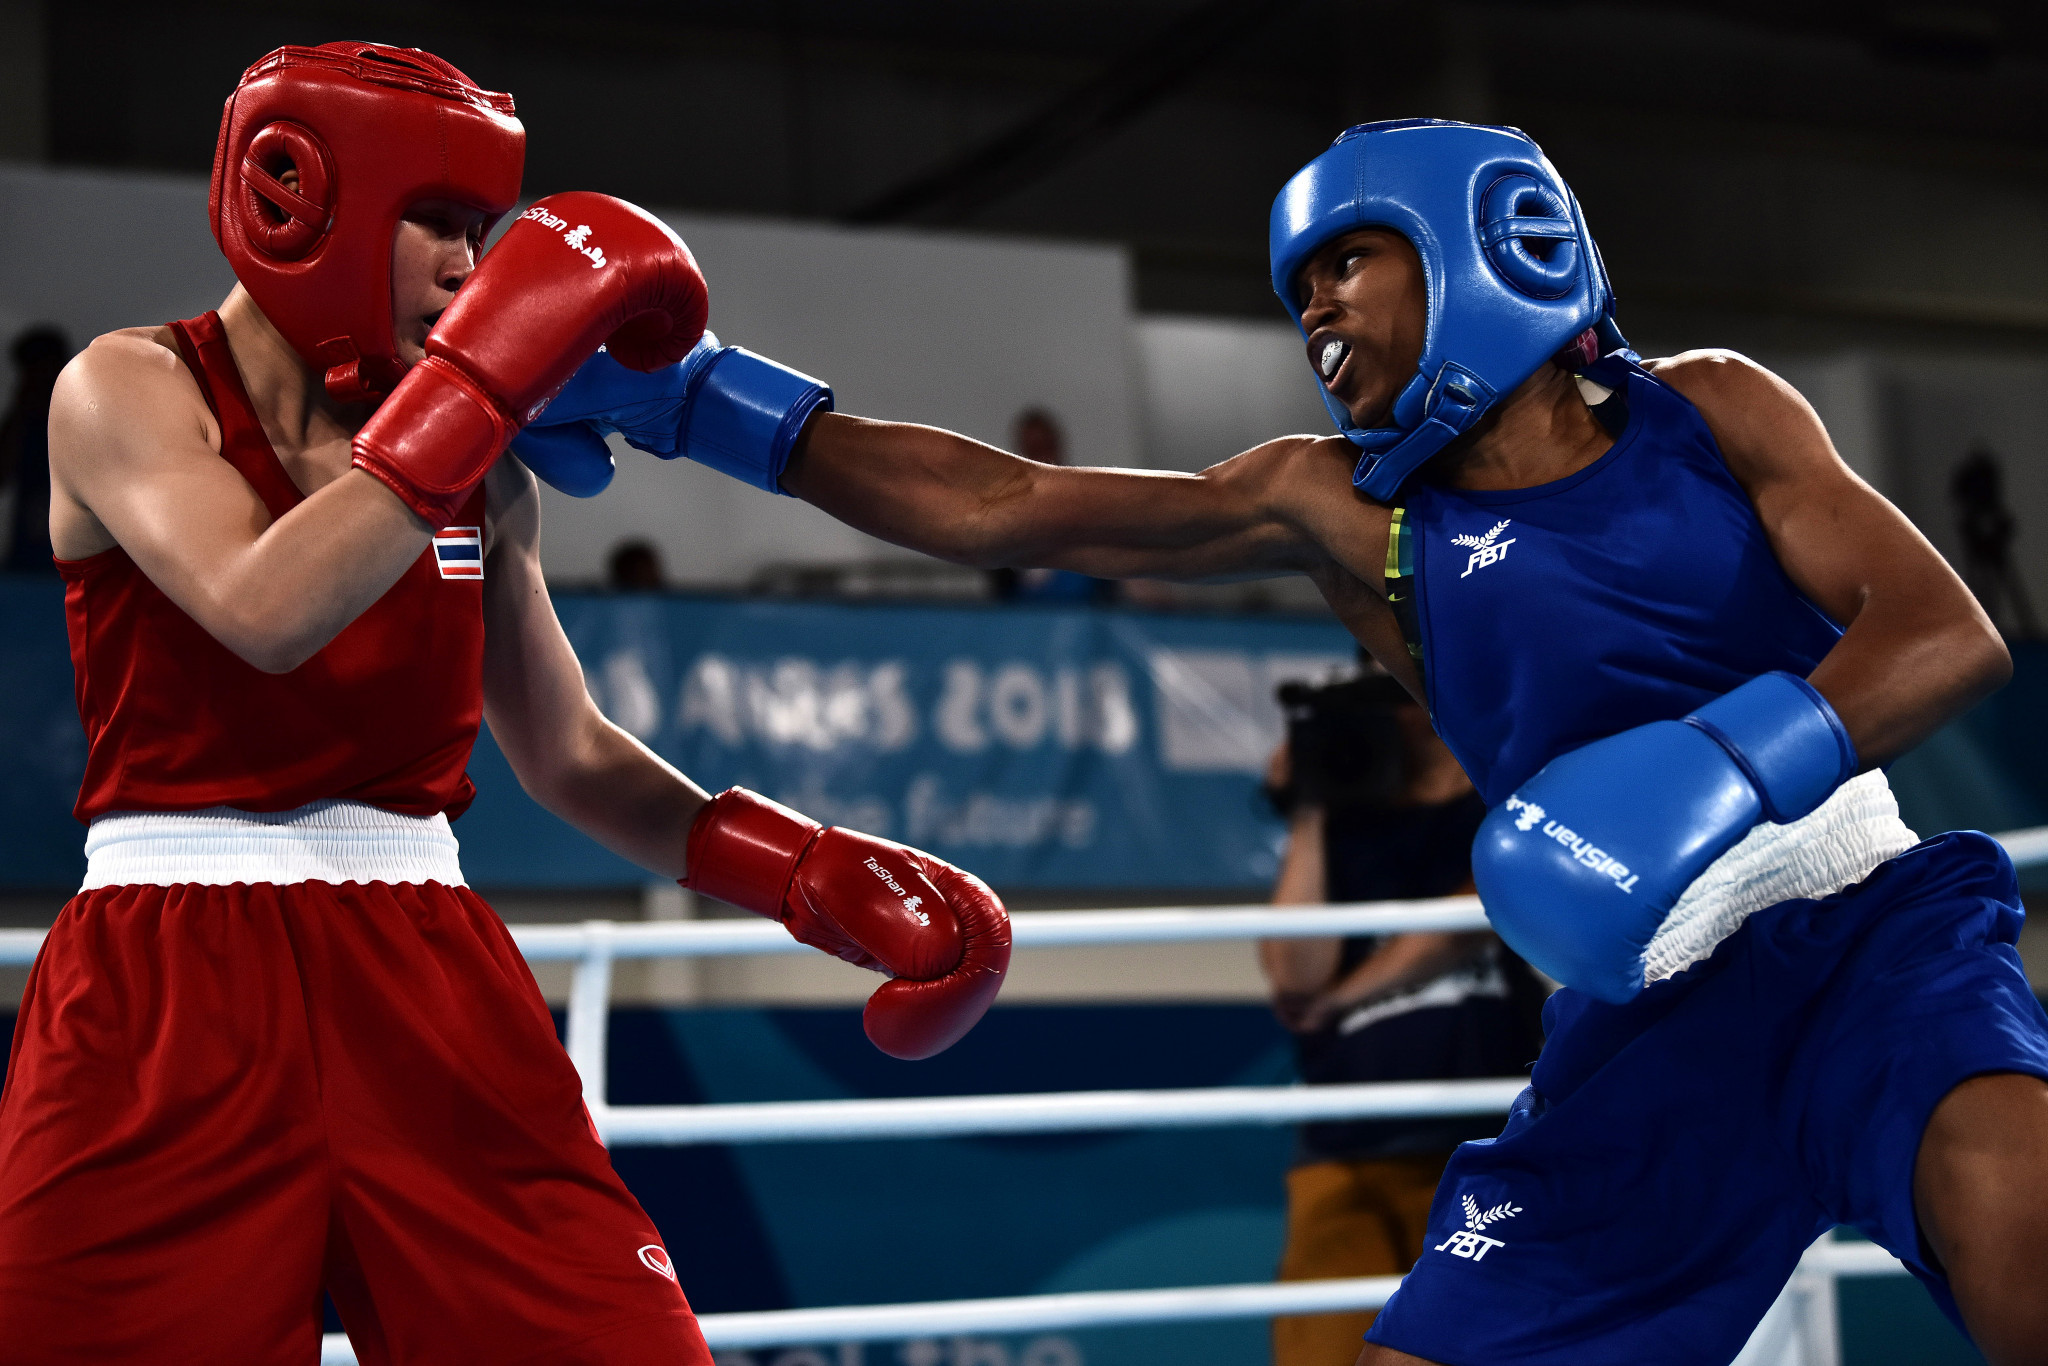 British boxers star on final day of Buenos Aires 2018